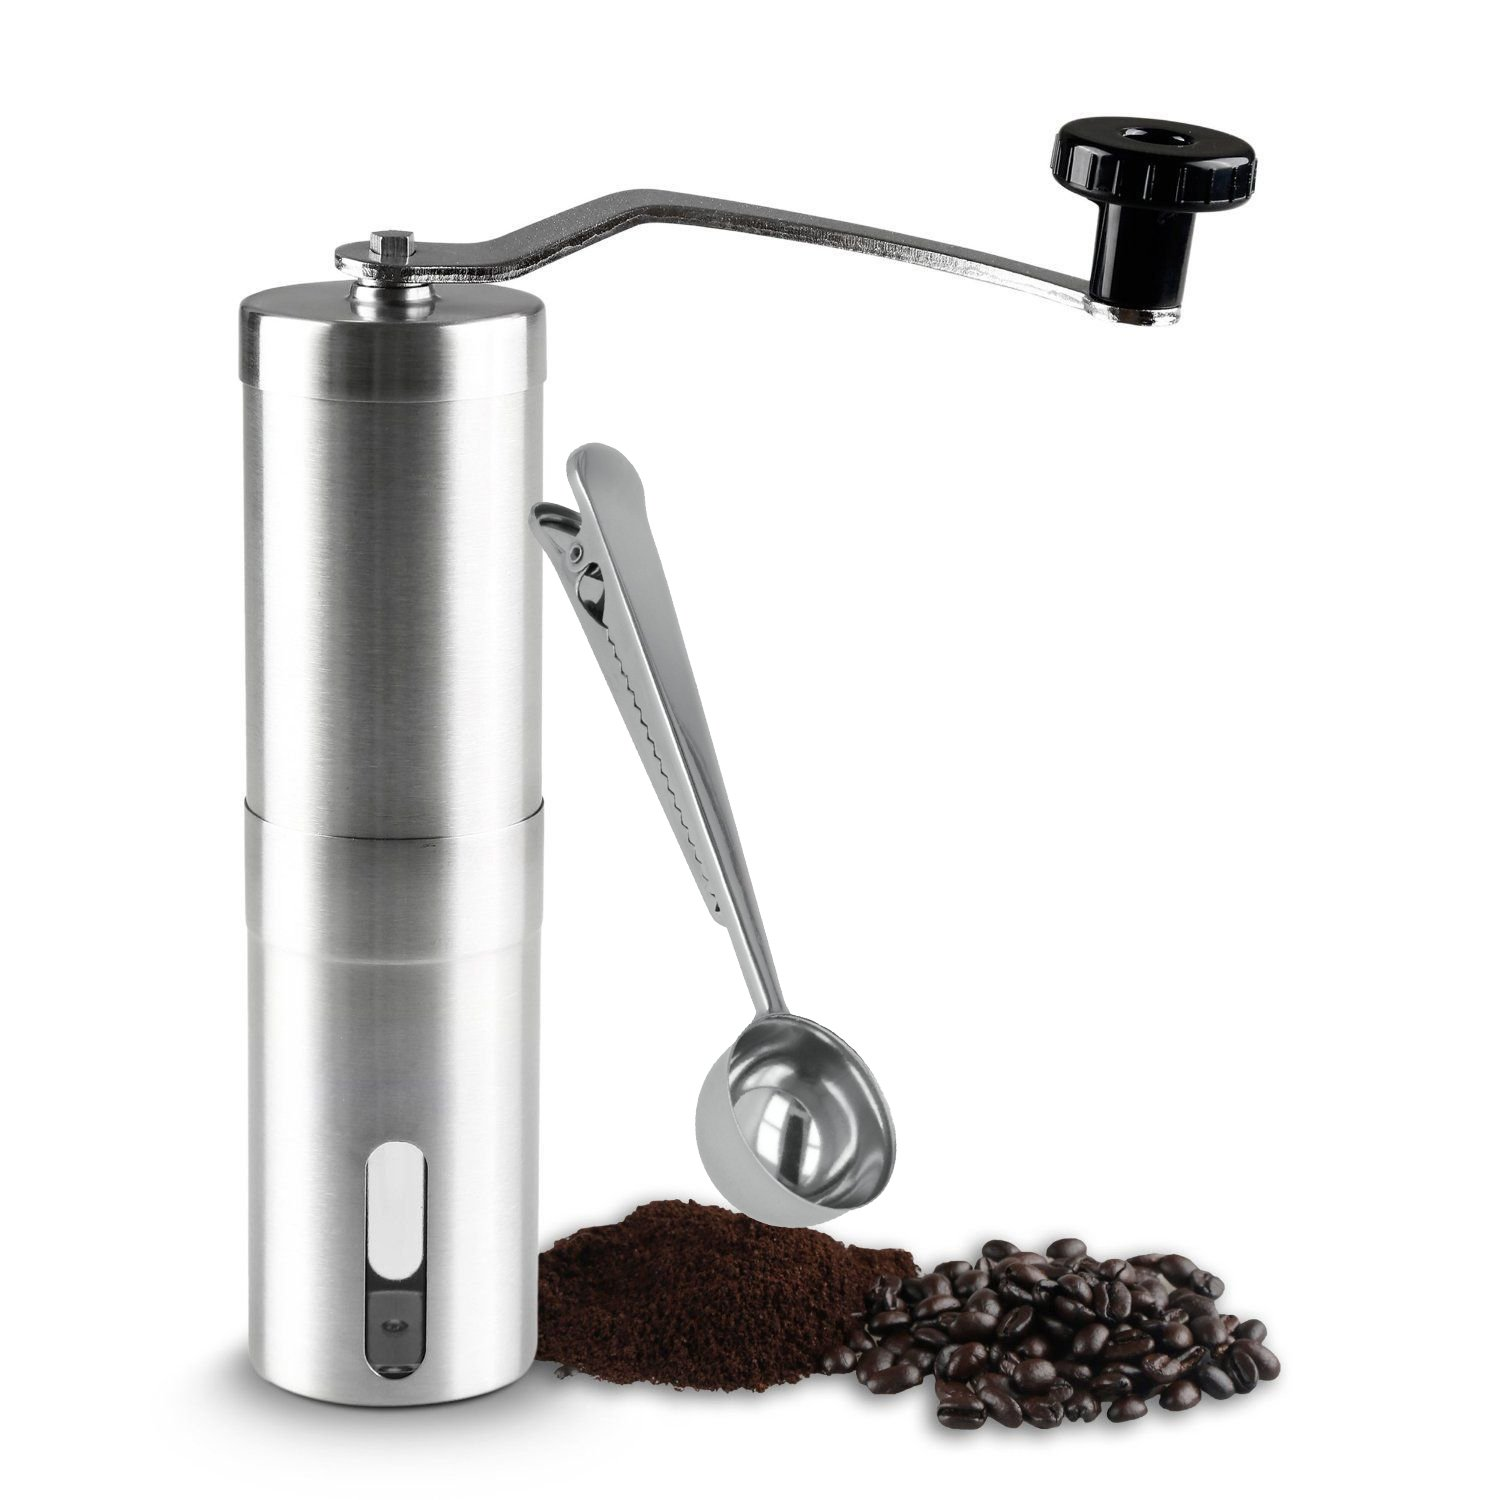 TraderPlus Stainless Steel Manual Coffee Grinder Top rotated Hand Crank Conical Burr Mill with Measuring Scoop Clip